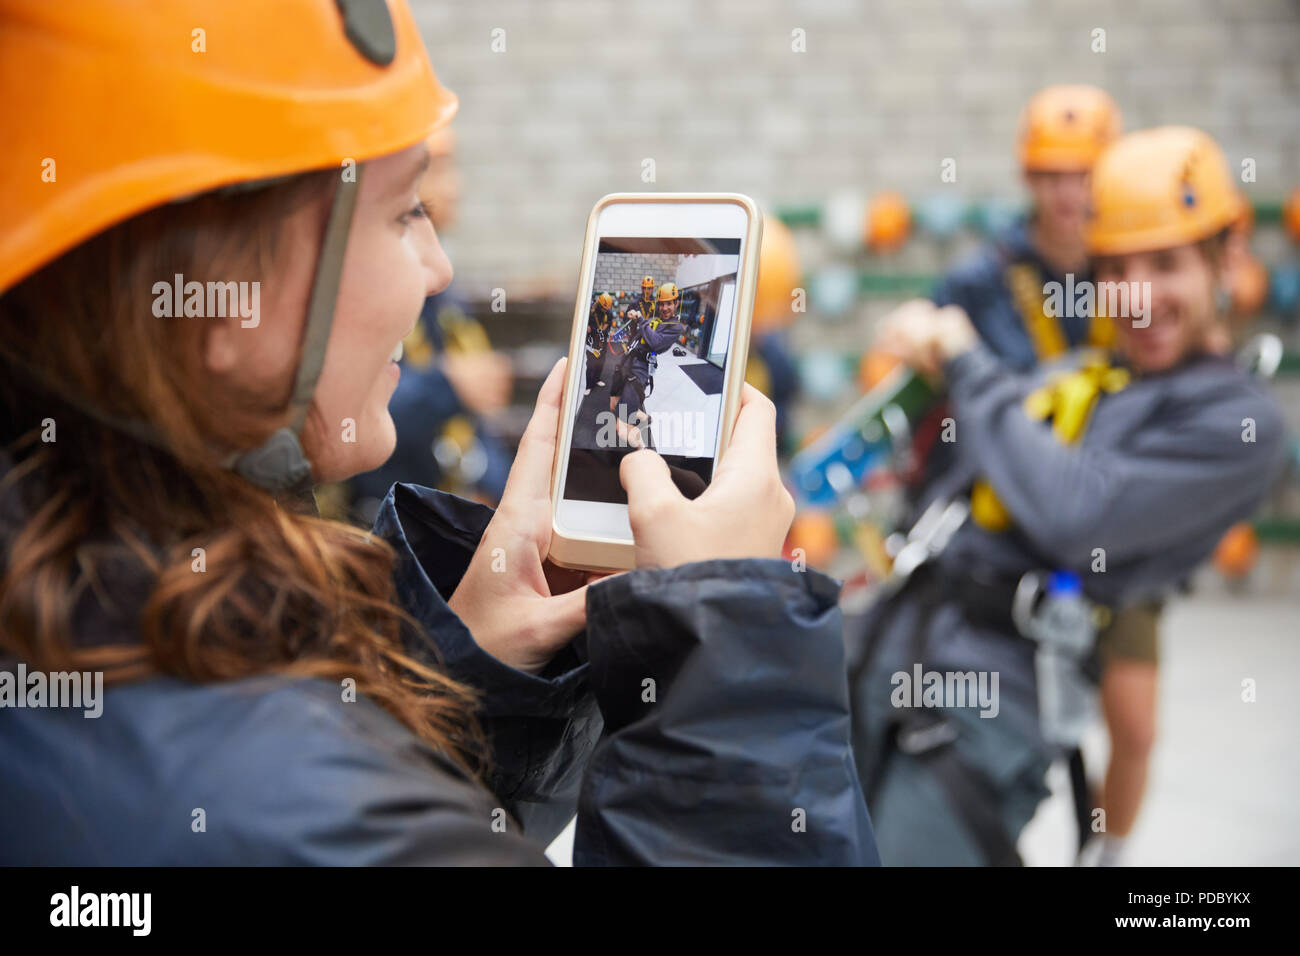 Woman with camera phone photographing friends in zip line equipment - Stock Image